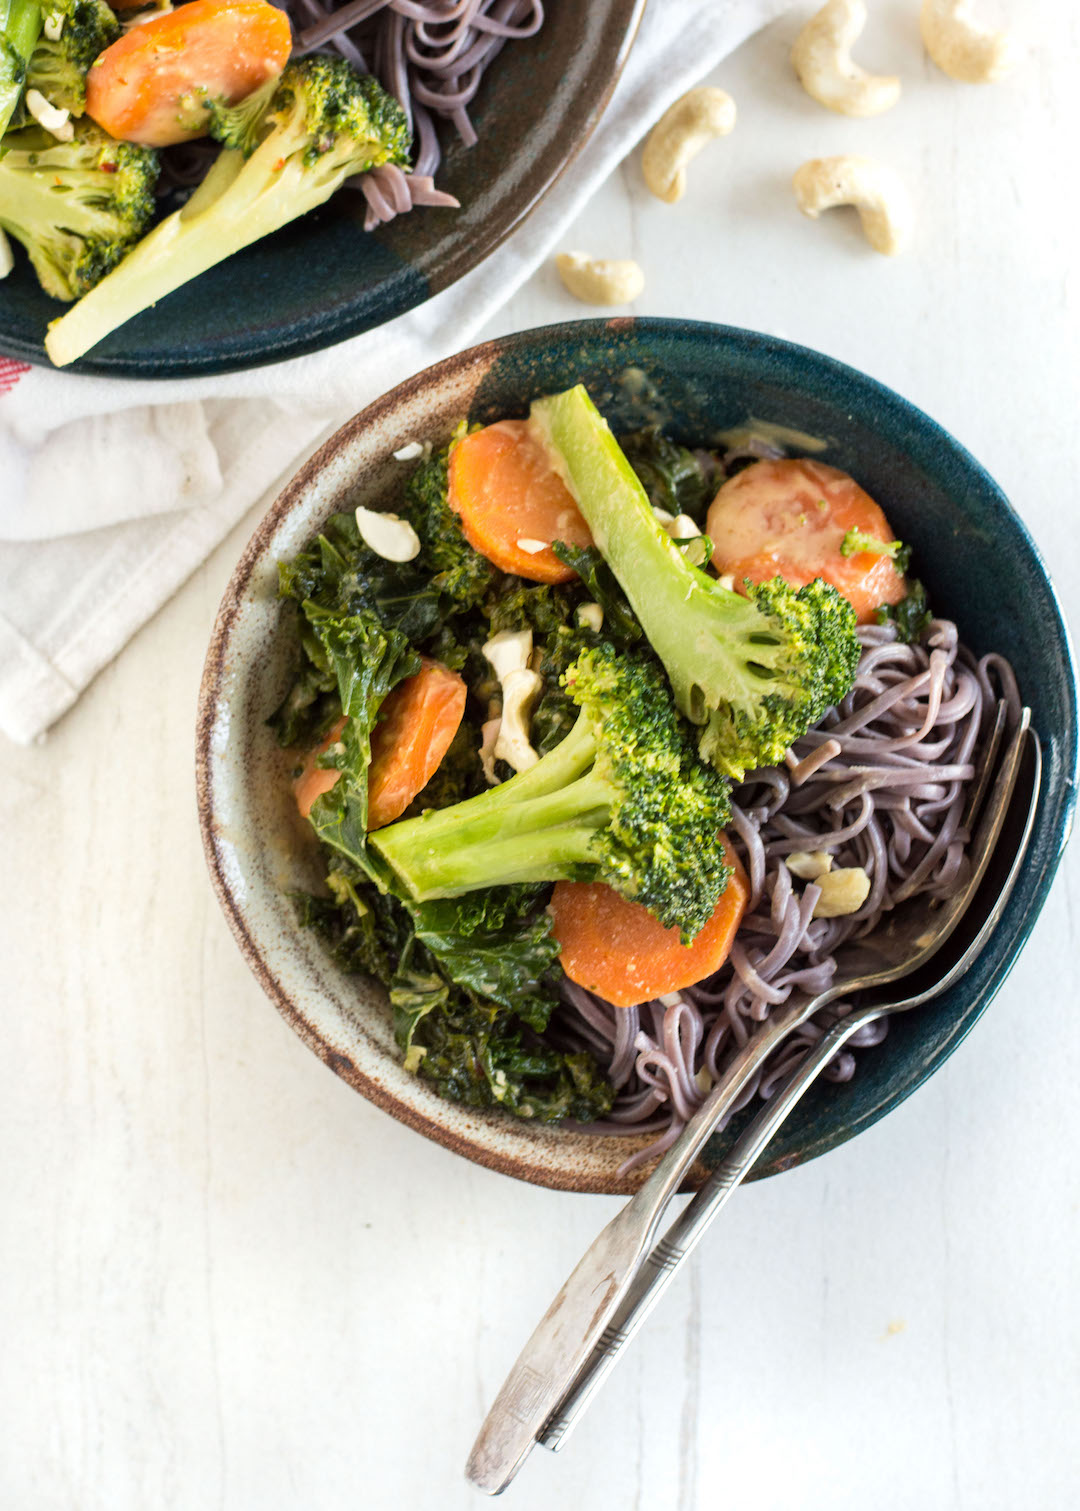 Gluten Free Peanut Soba Noodle Bowls | Noodle Bowls | Vegetables | Gluten Free, Vegan-possible, easy to make | Dinner recipe | Gilmore Girls Viewing Party Round Up - Peanut Soba Noodle Bowls with Veggies